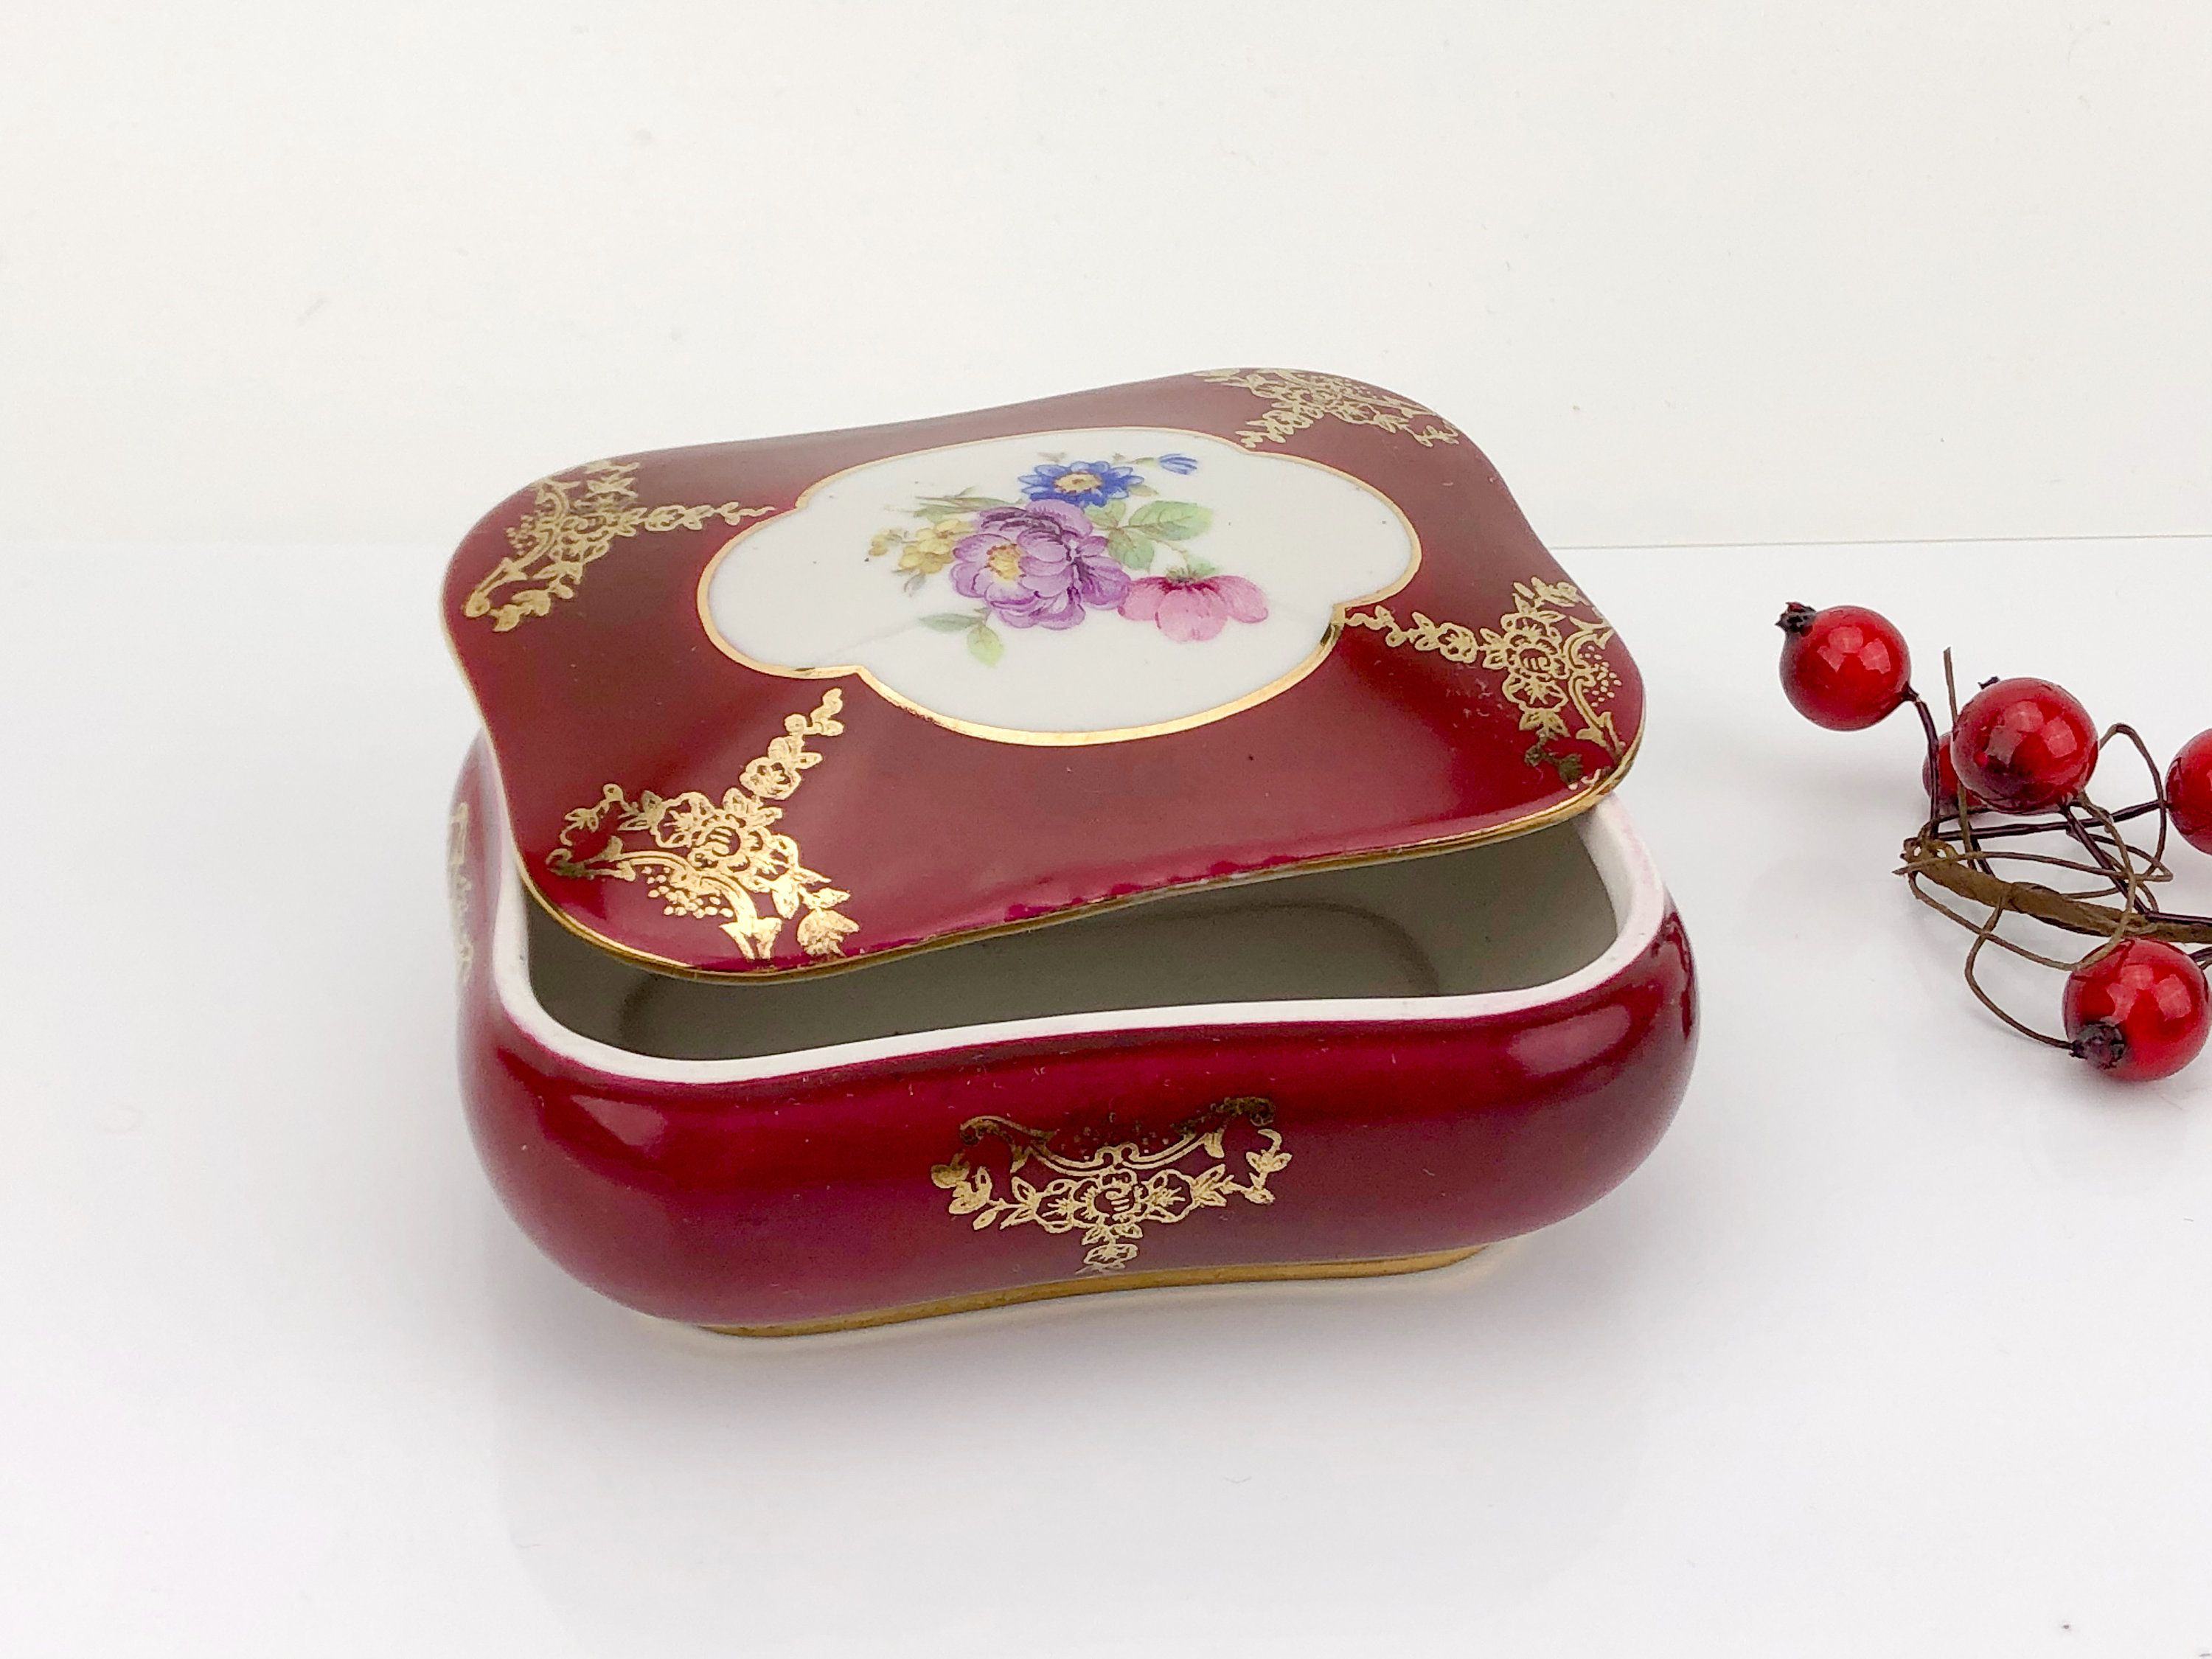 Royal Bavaria vintage jewellery box made in Germany 20th century